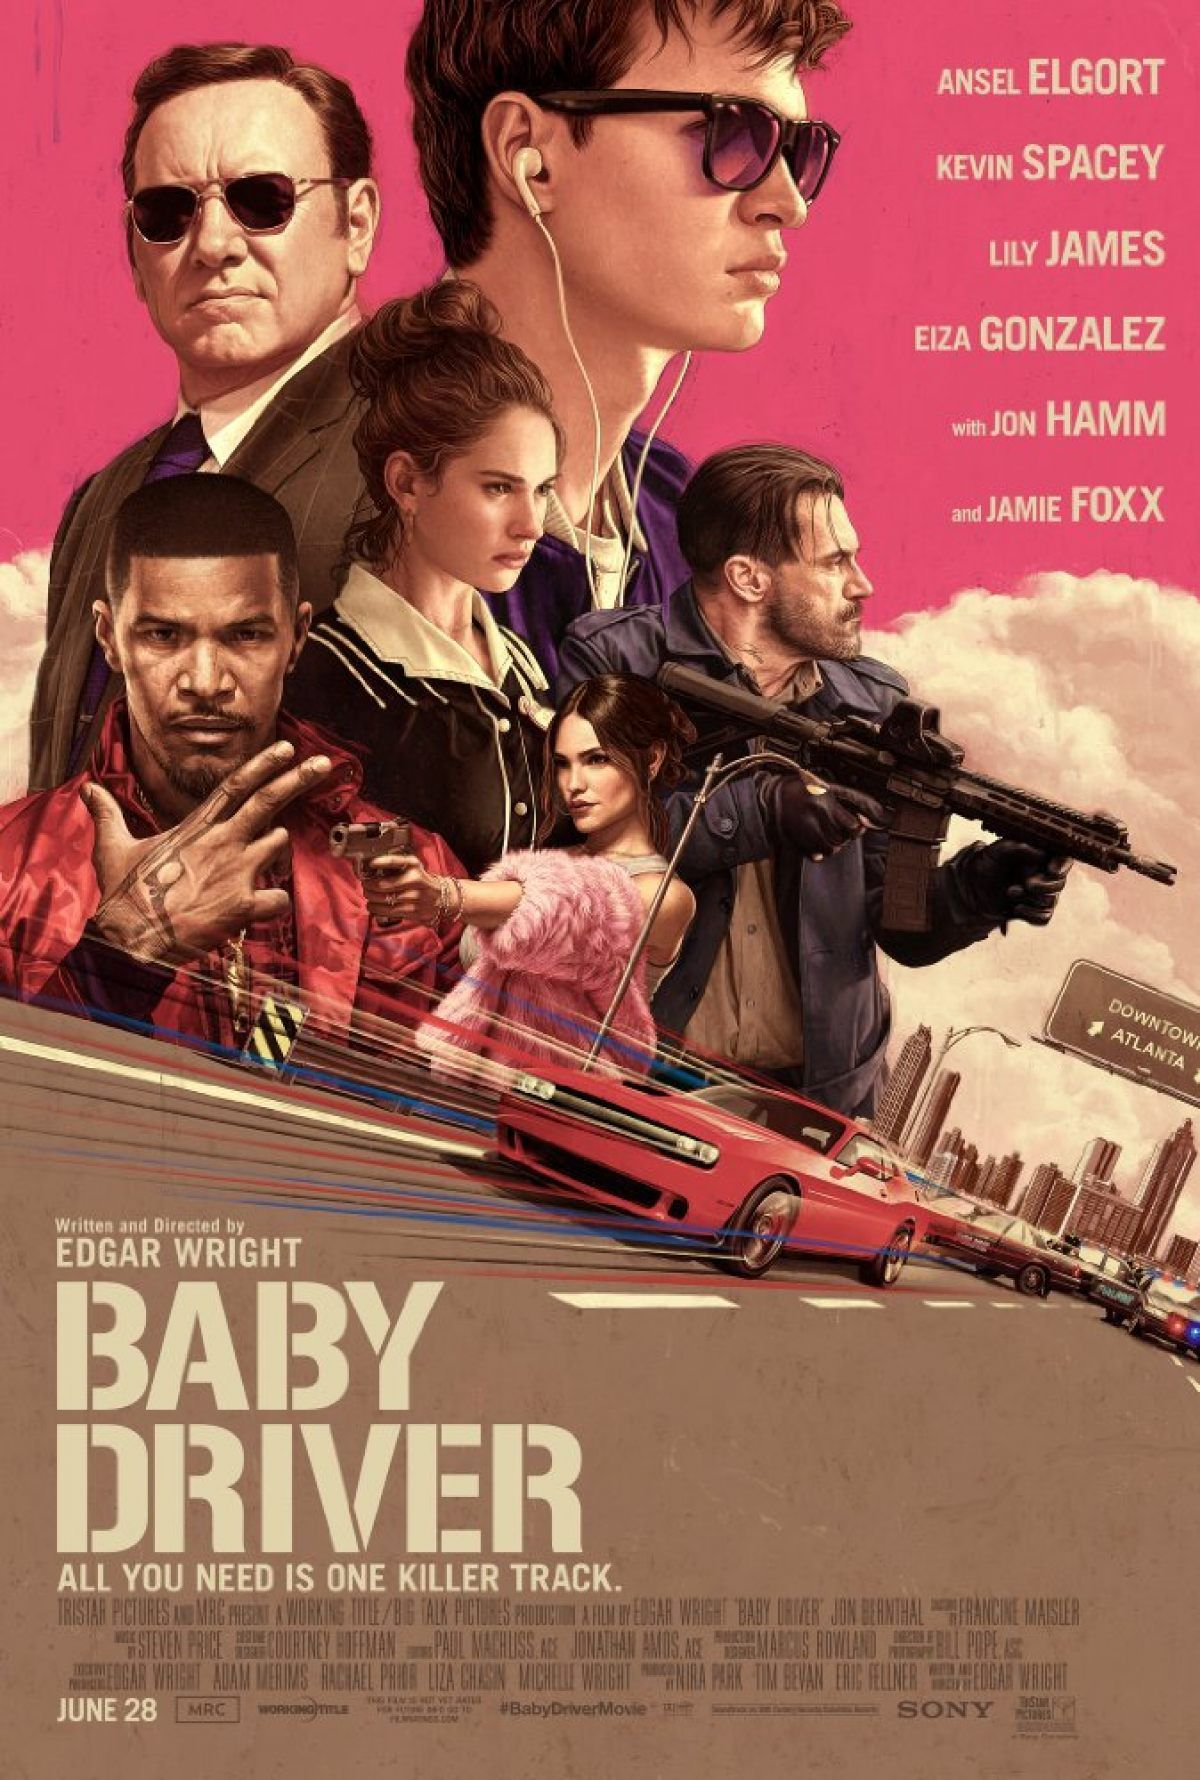 Baby driver 3 6